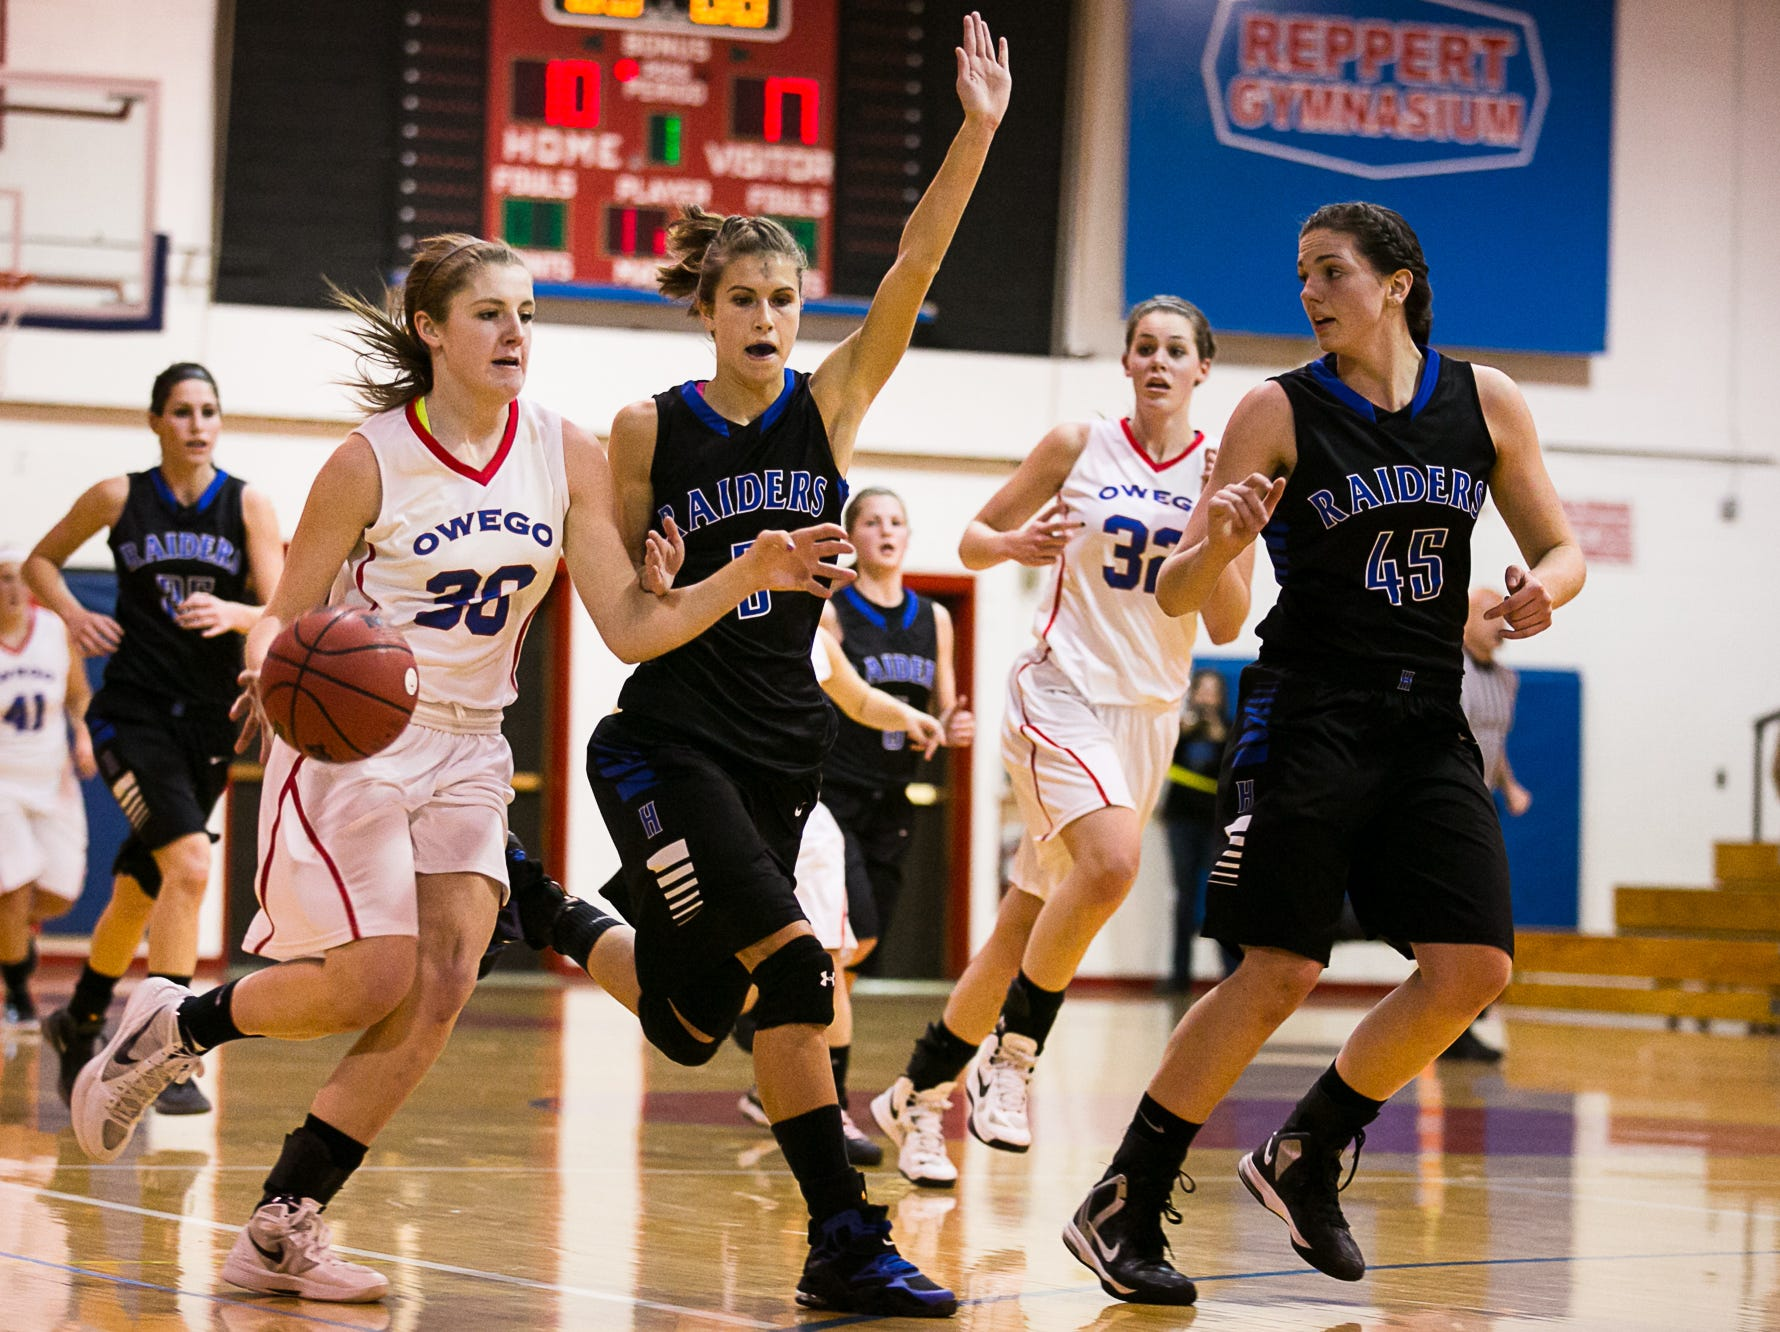 2013: Emily Merrill, left, brings the ball up court against Horseheads? Tess Wicks in the STAC semifinals Wednesday at Owego.